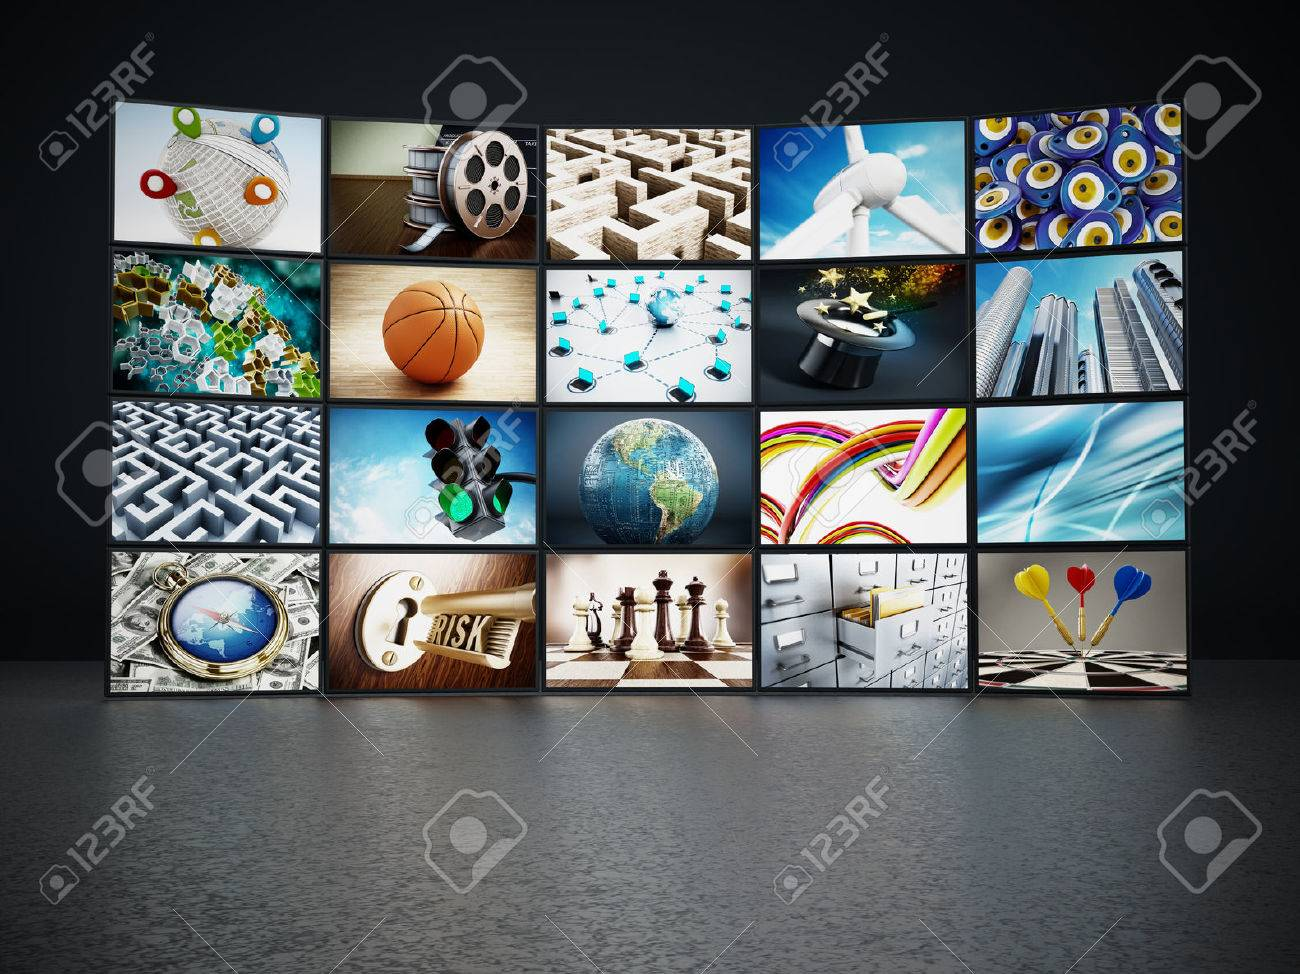 Video wall containing images from my portfolio. Stock Photo - 40917889